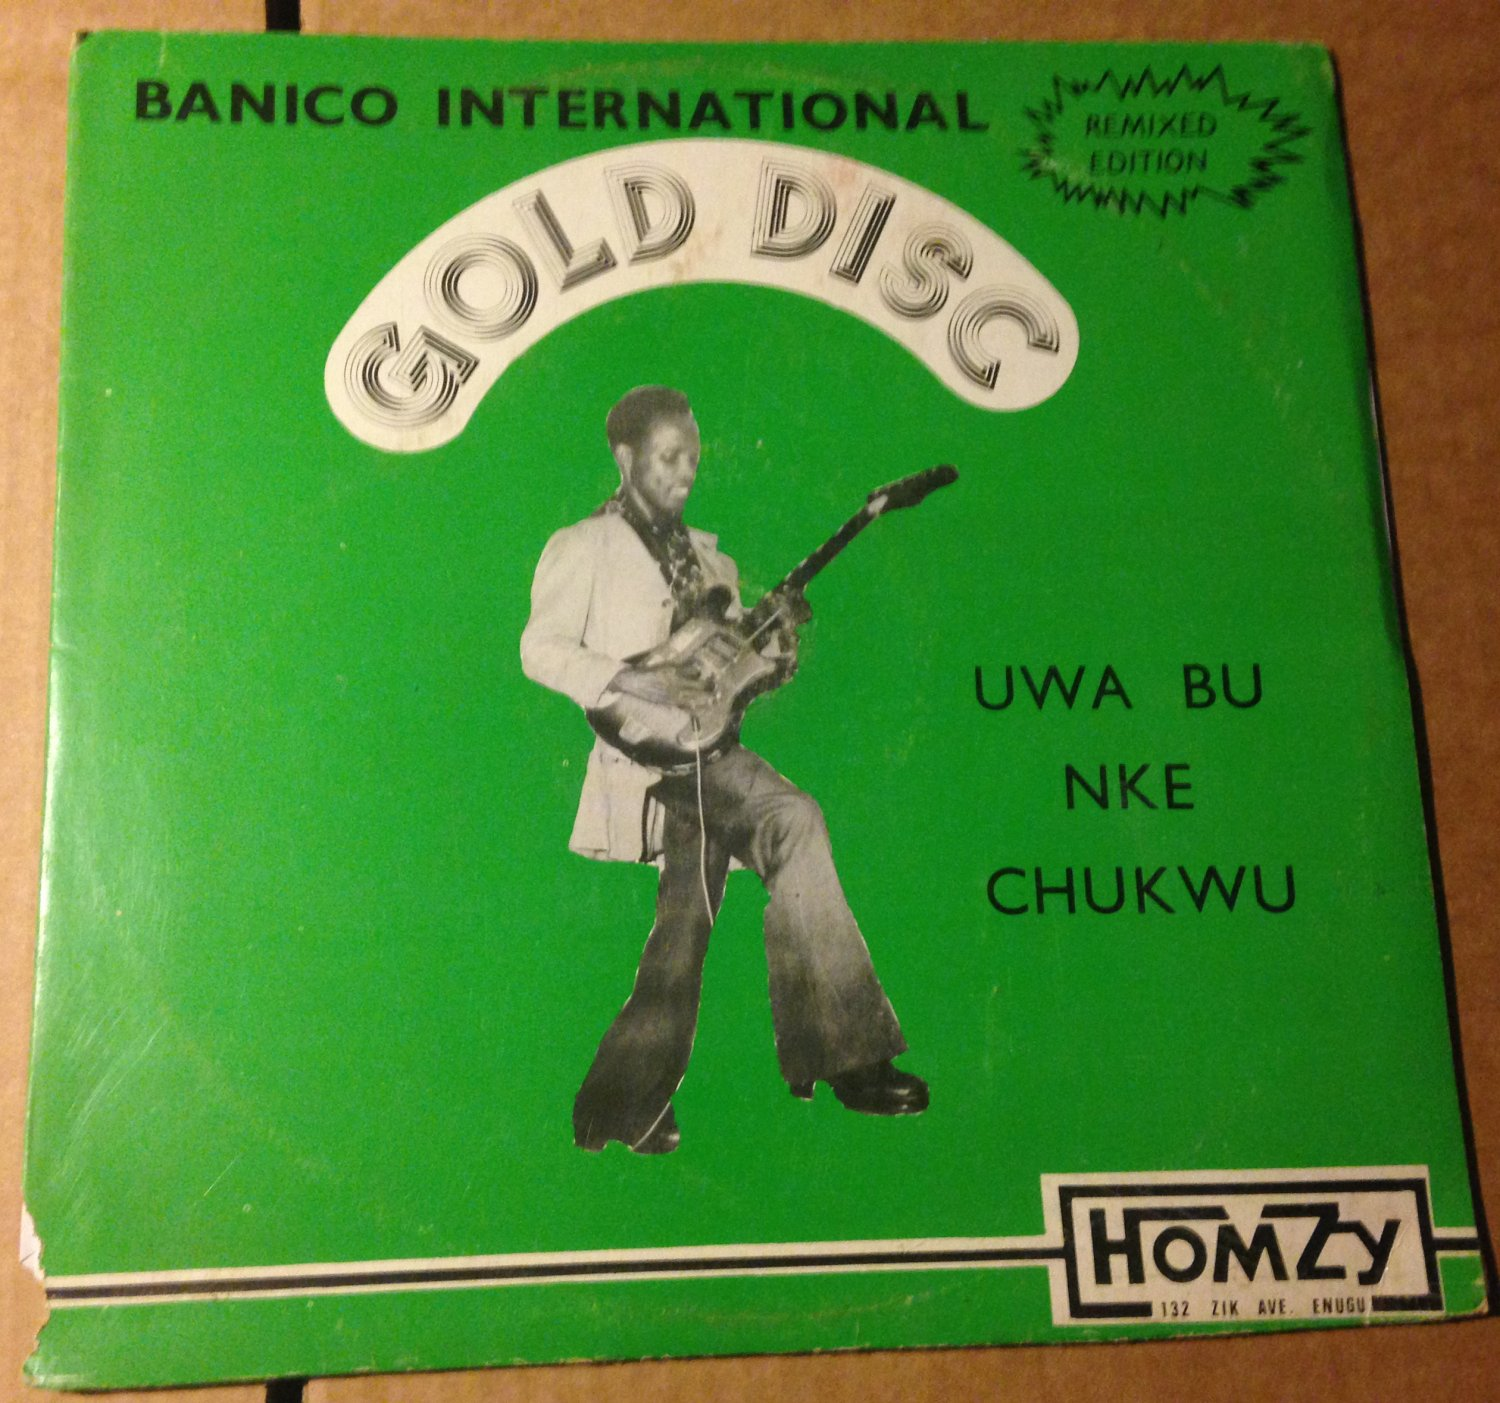 BANICO INTERNATIONAL LP uwa bu nke chukwu NIGERIA HIGHLIFE mp3